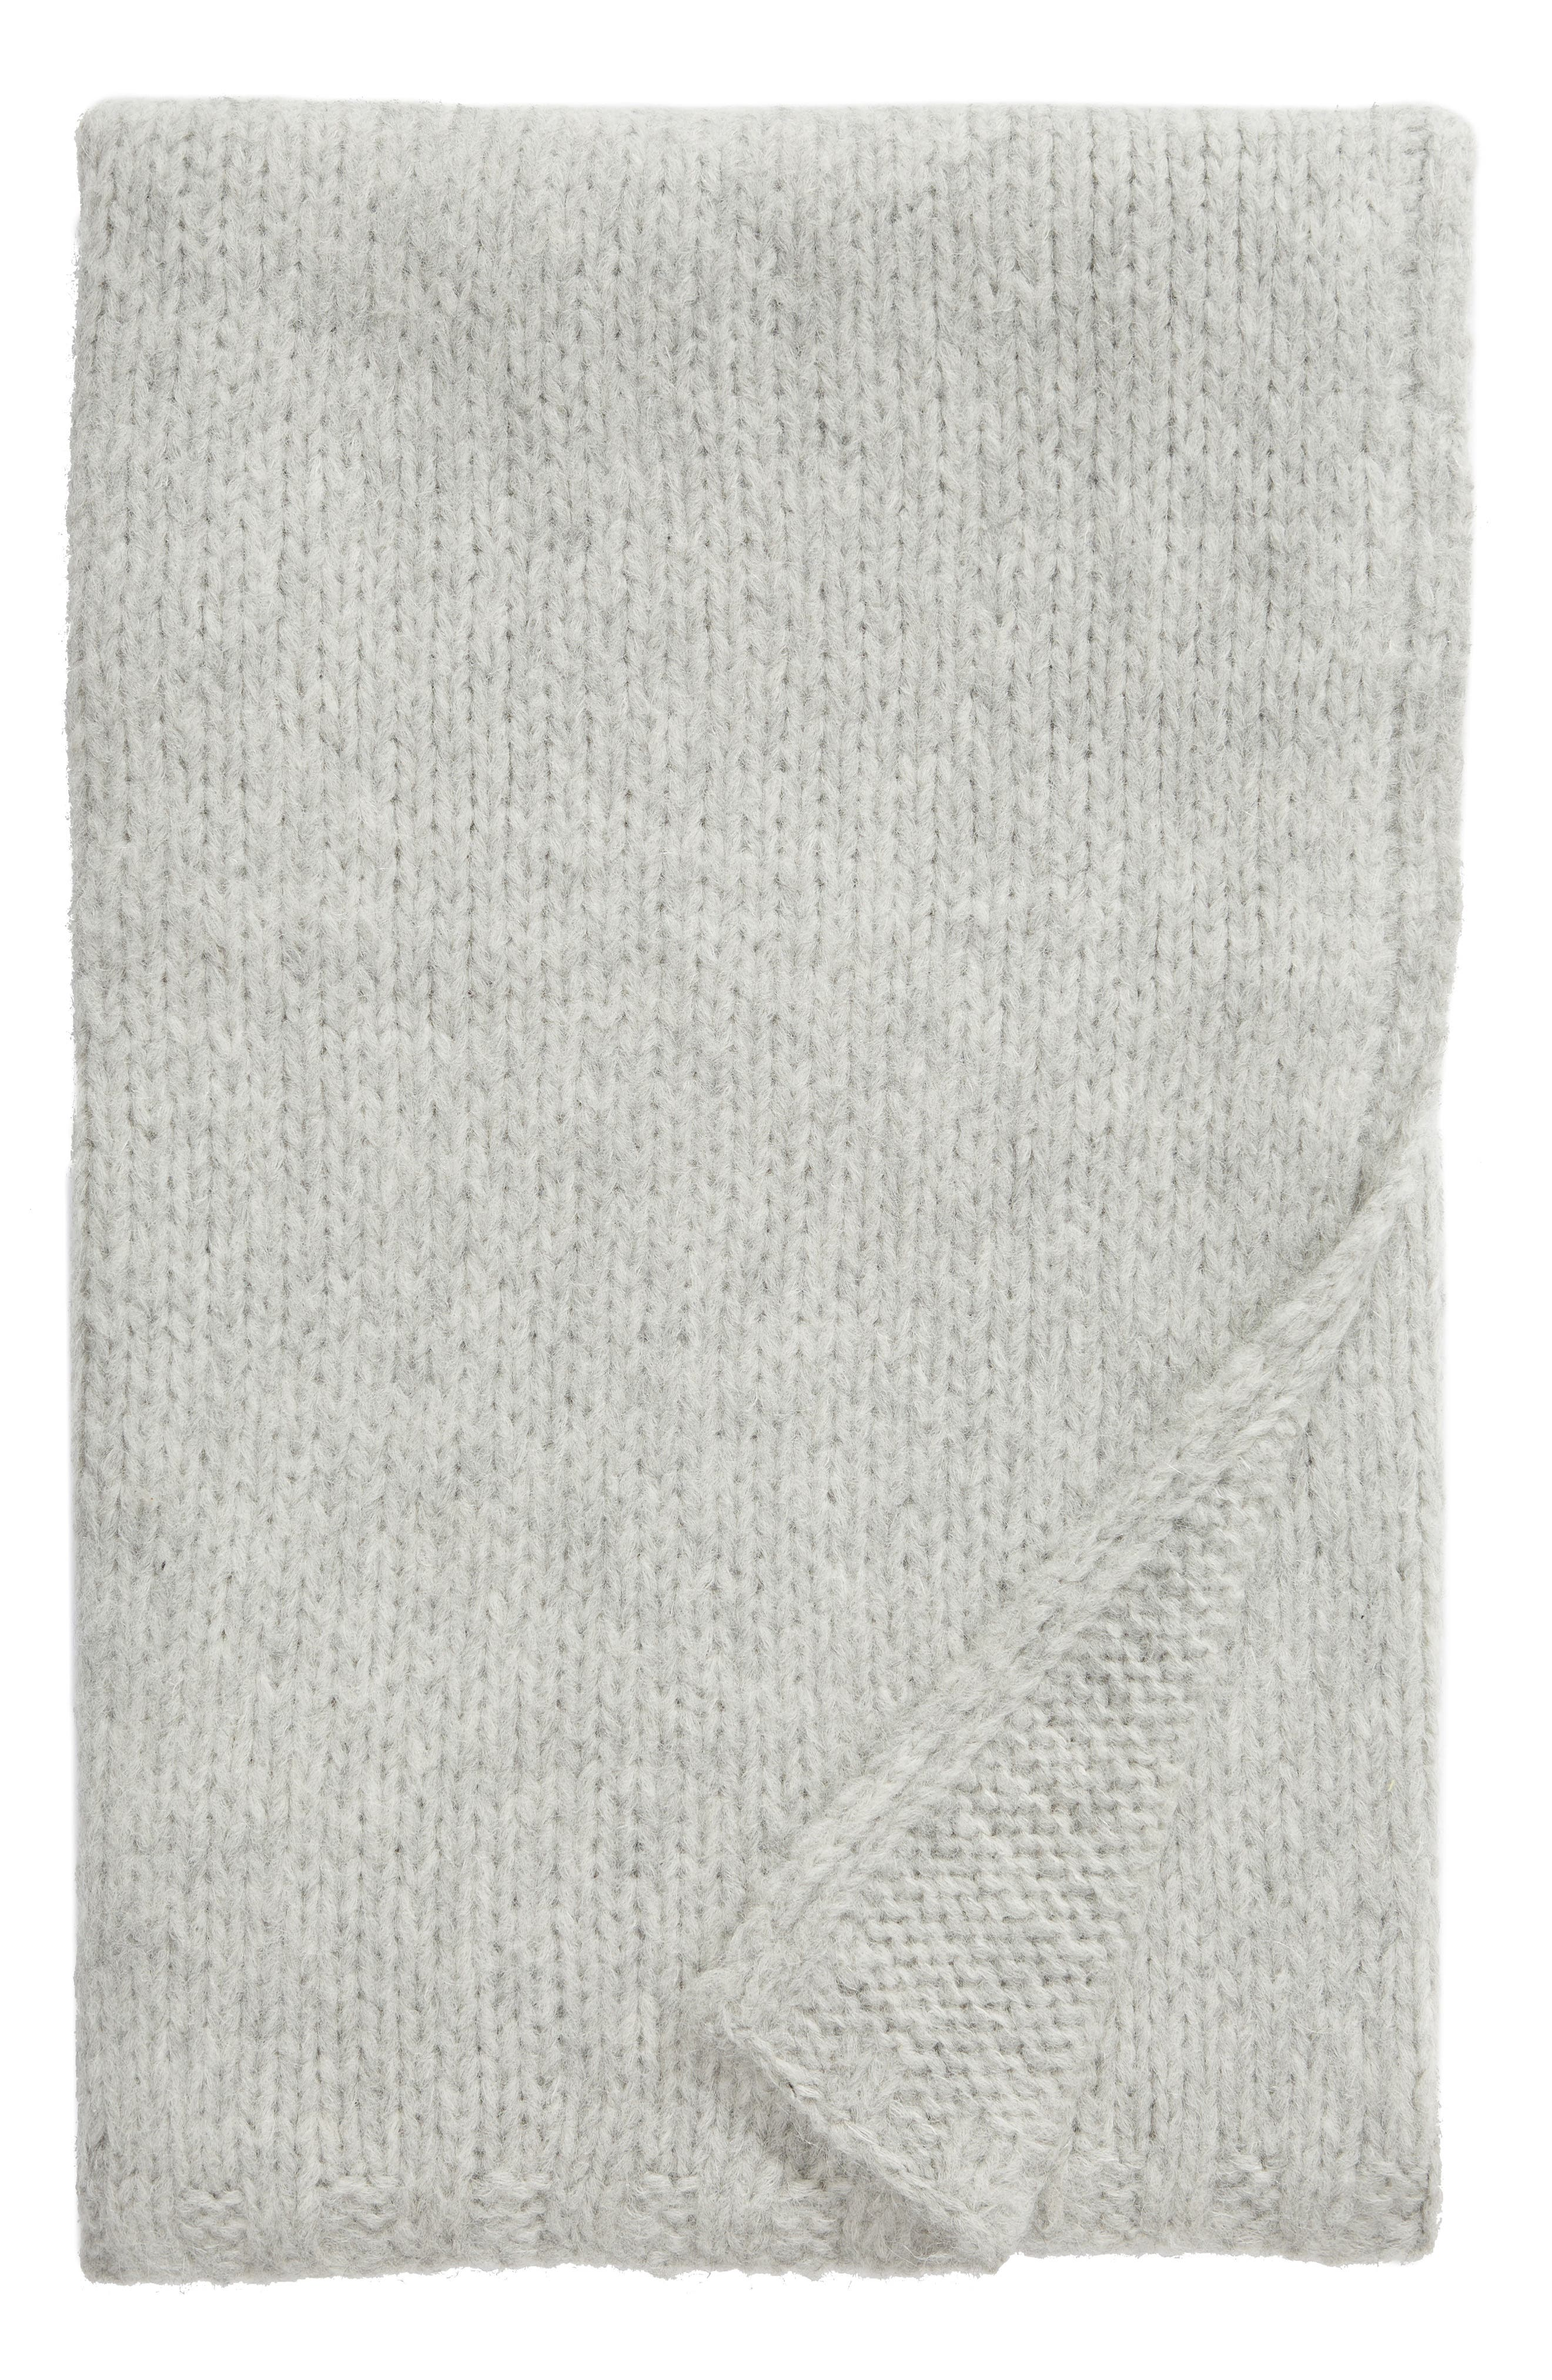 NORDSTROM SIGNATURE, Chunky Knit Alpaca Blend Throw Blanket, Main thumbnail 1, color, GREY HEATHER